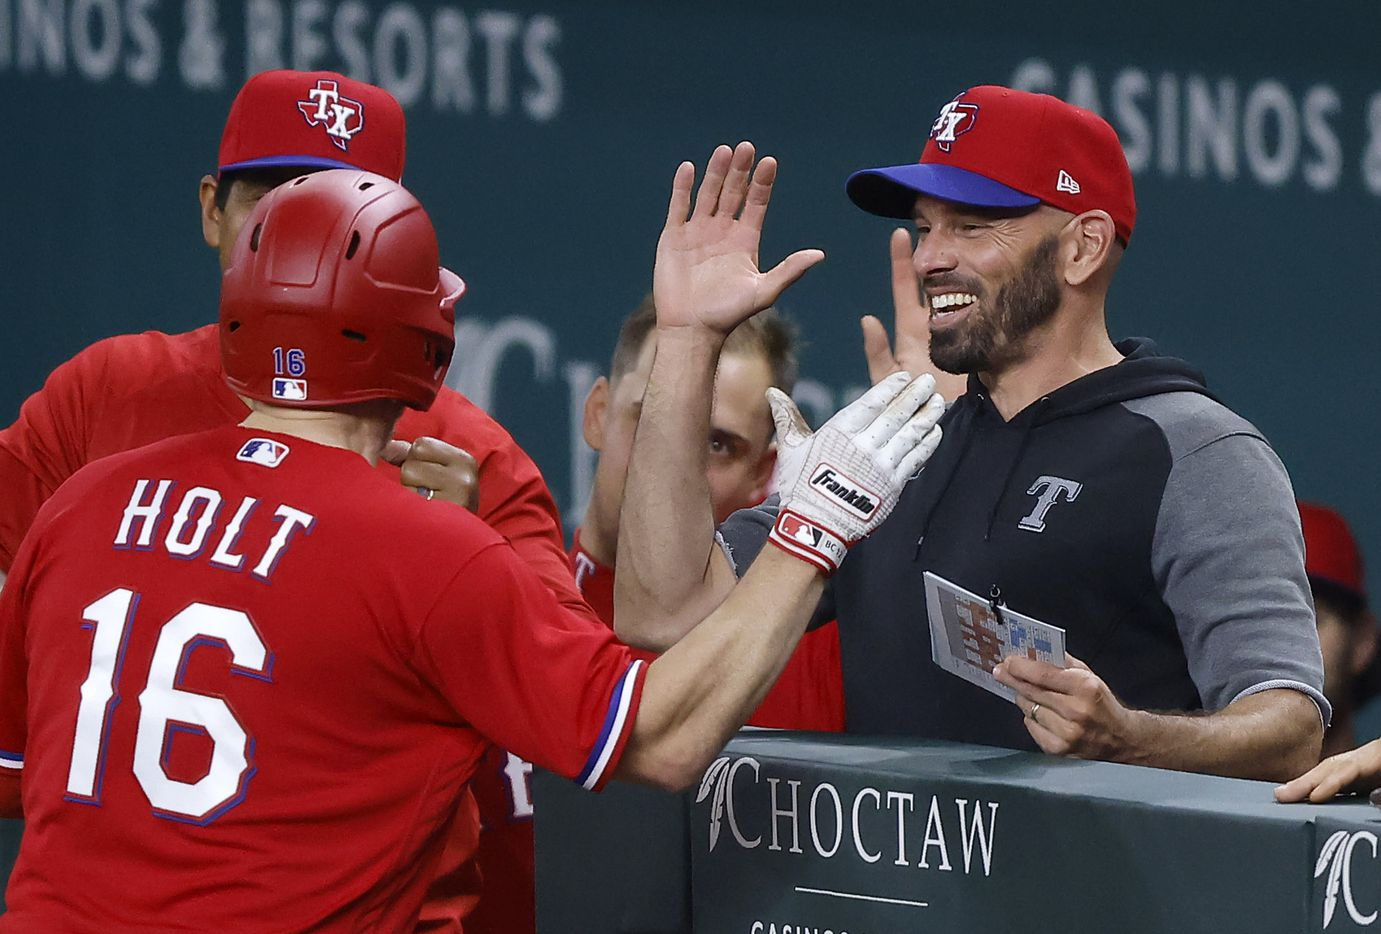 Texas Rangers batter Brock Holt (16) is congratulated by manager Chris Woodward after hitting a solo home run against the Houston Astros in the third inning at Globe Life Field in Arlington, Texas, Friday, May 21, 2009. (Tom Fox/The Dallas Morning News)